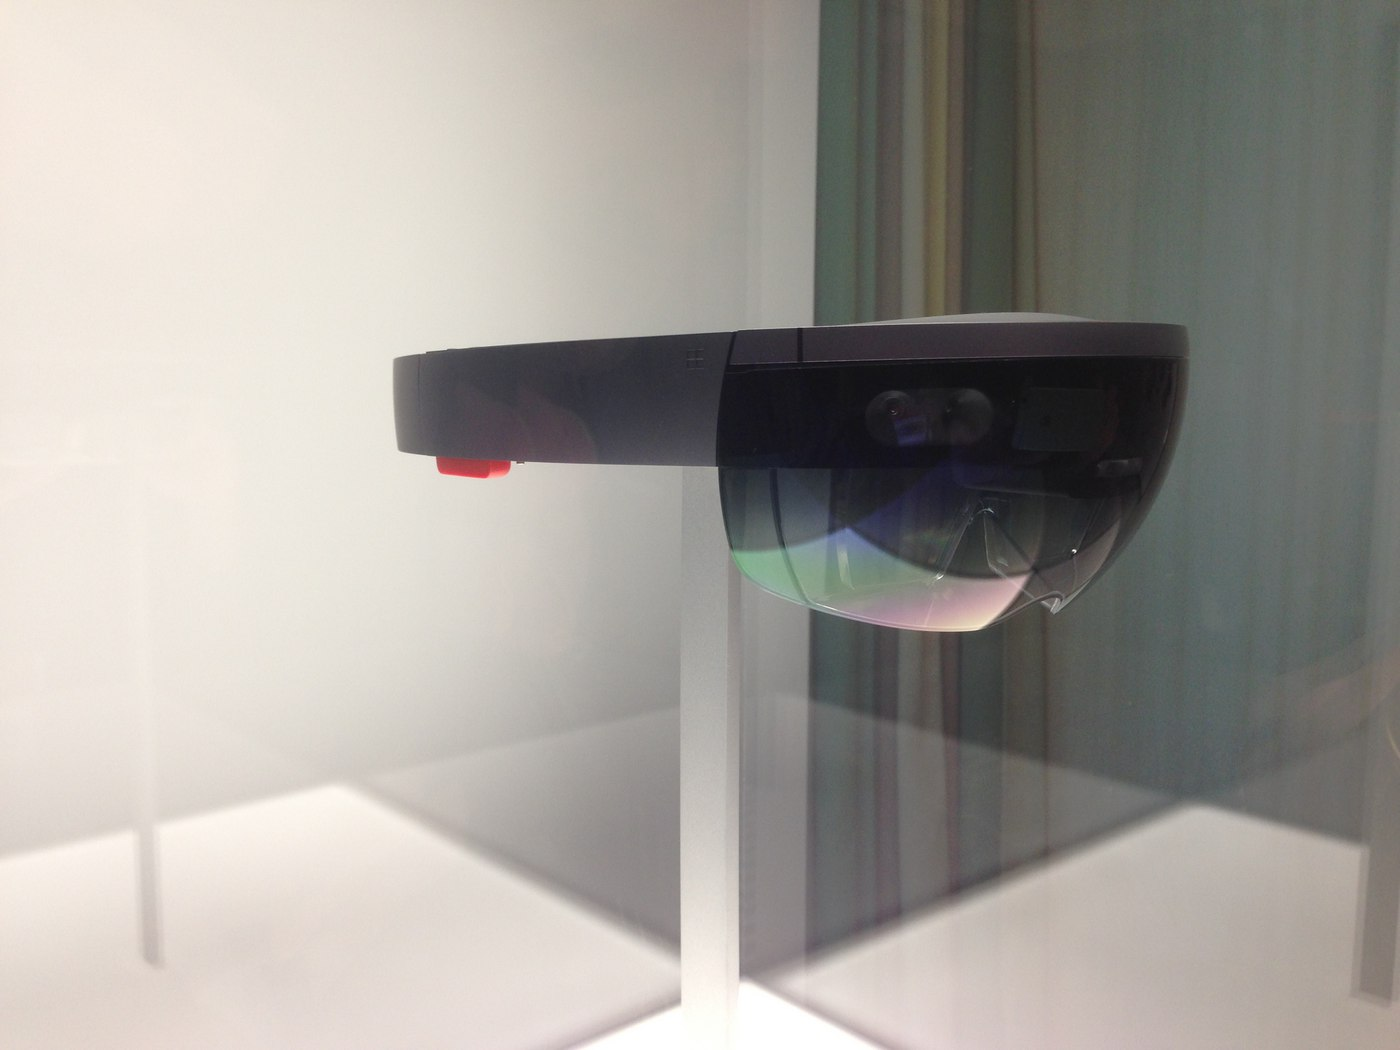 Microsoft Reinvents 3D Glasses with HoloLens